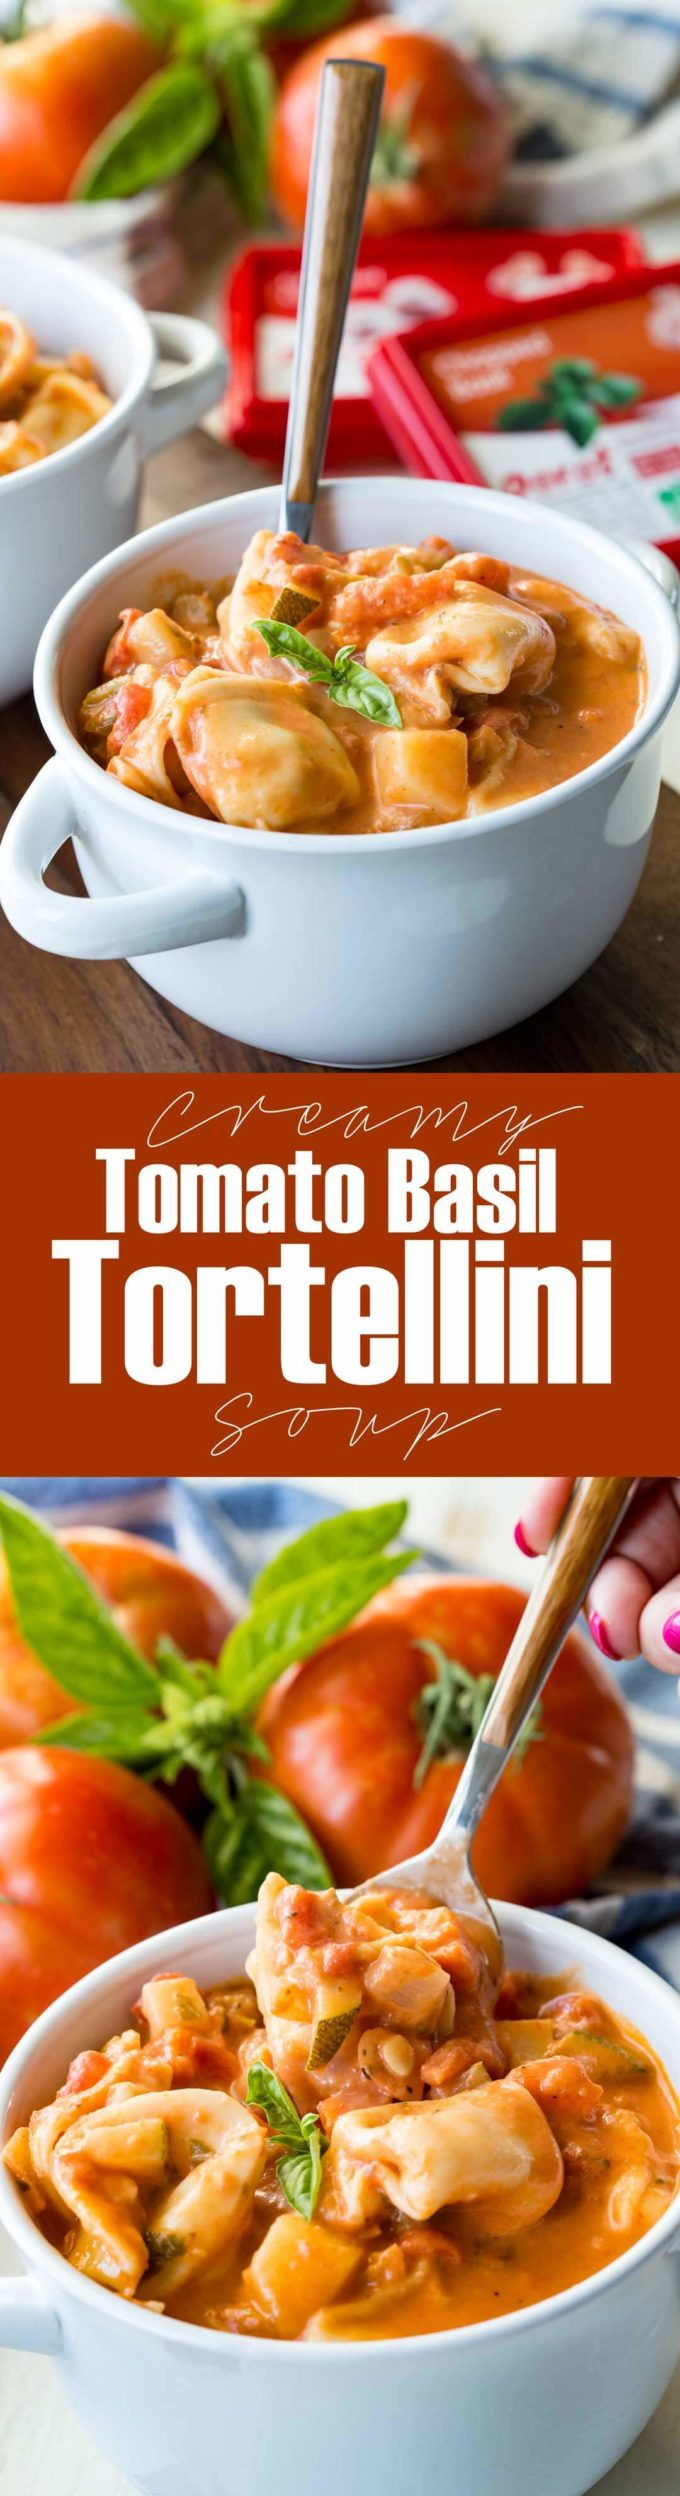 I made this for dinner and we licked the pot clean. Creamy Tomato Basil Tortellini Soup packed with veggies. #ad